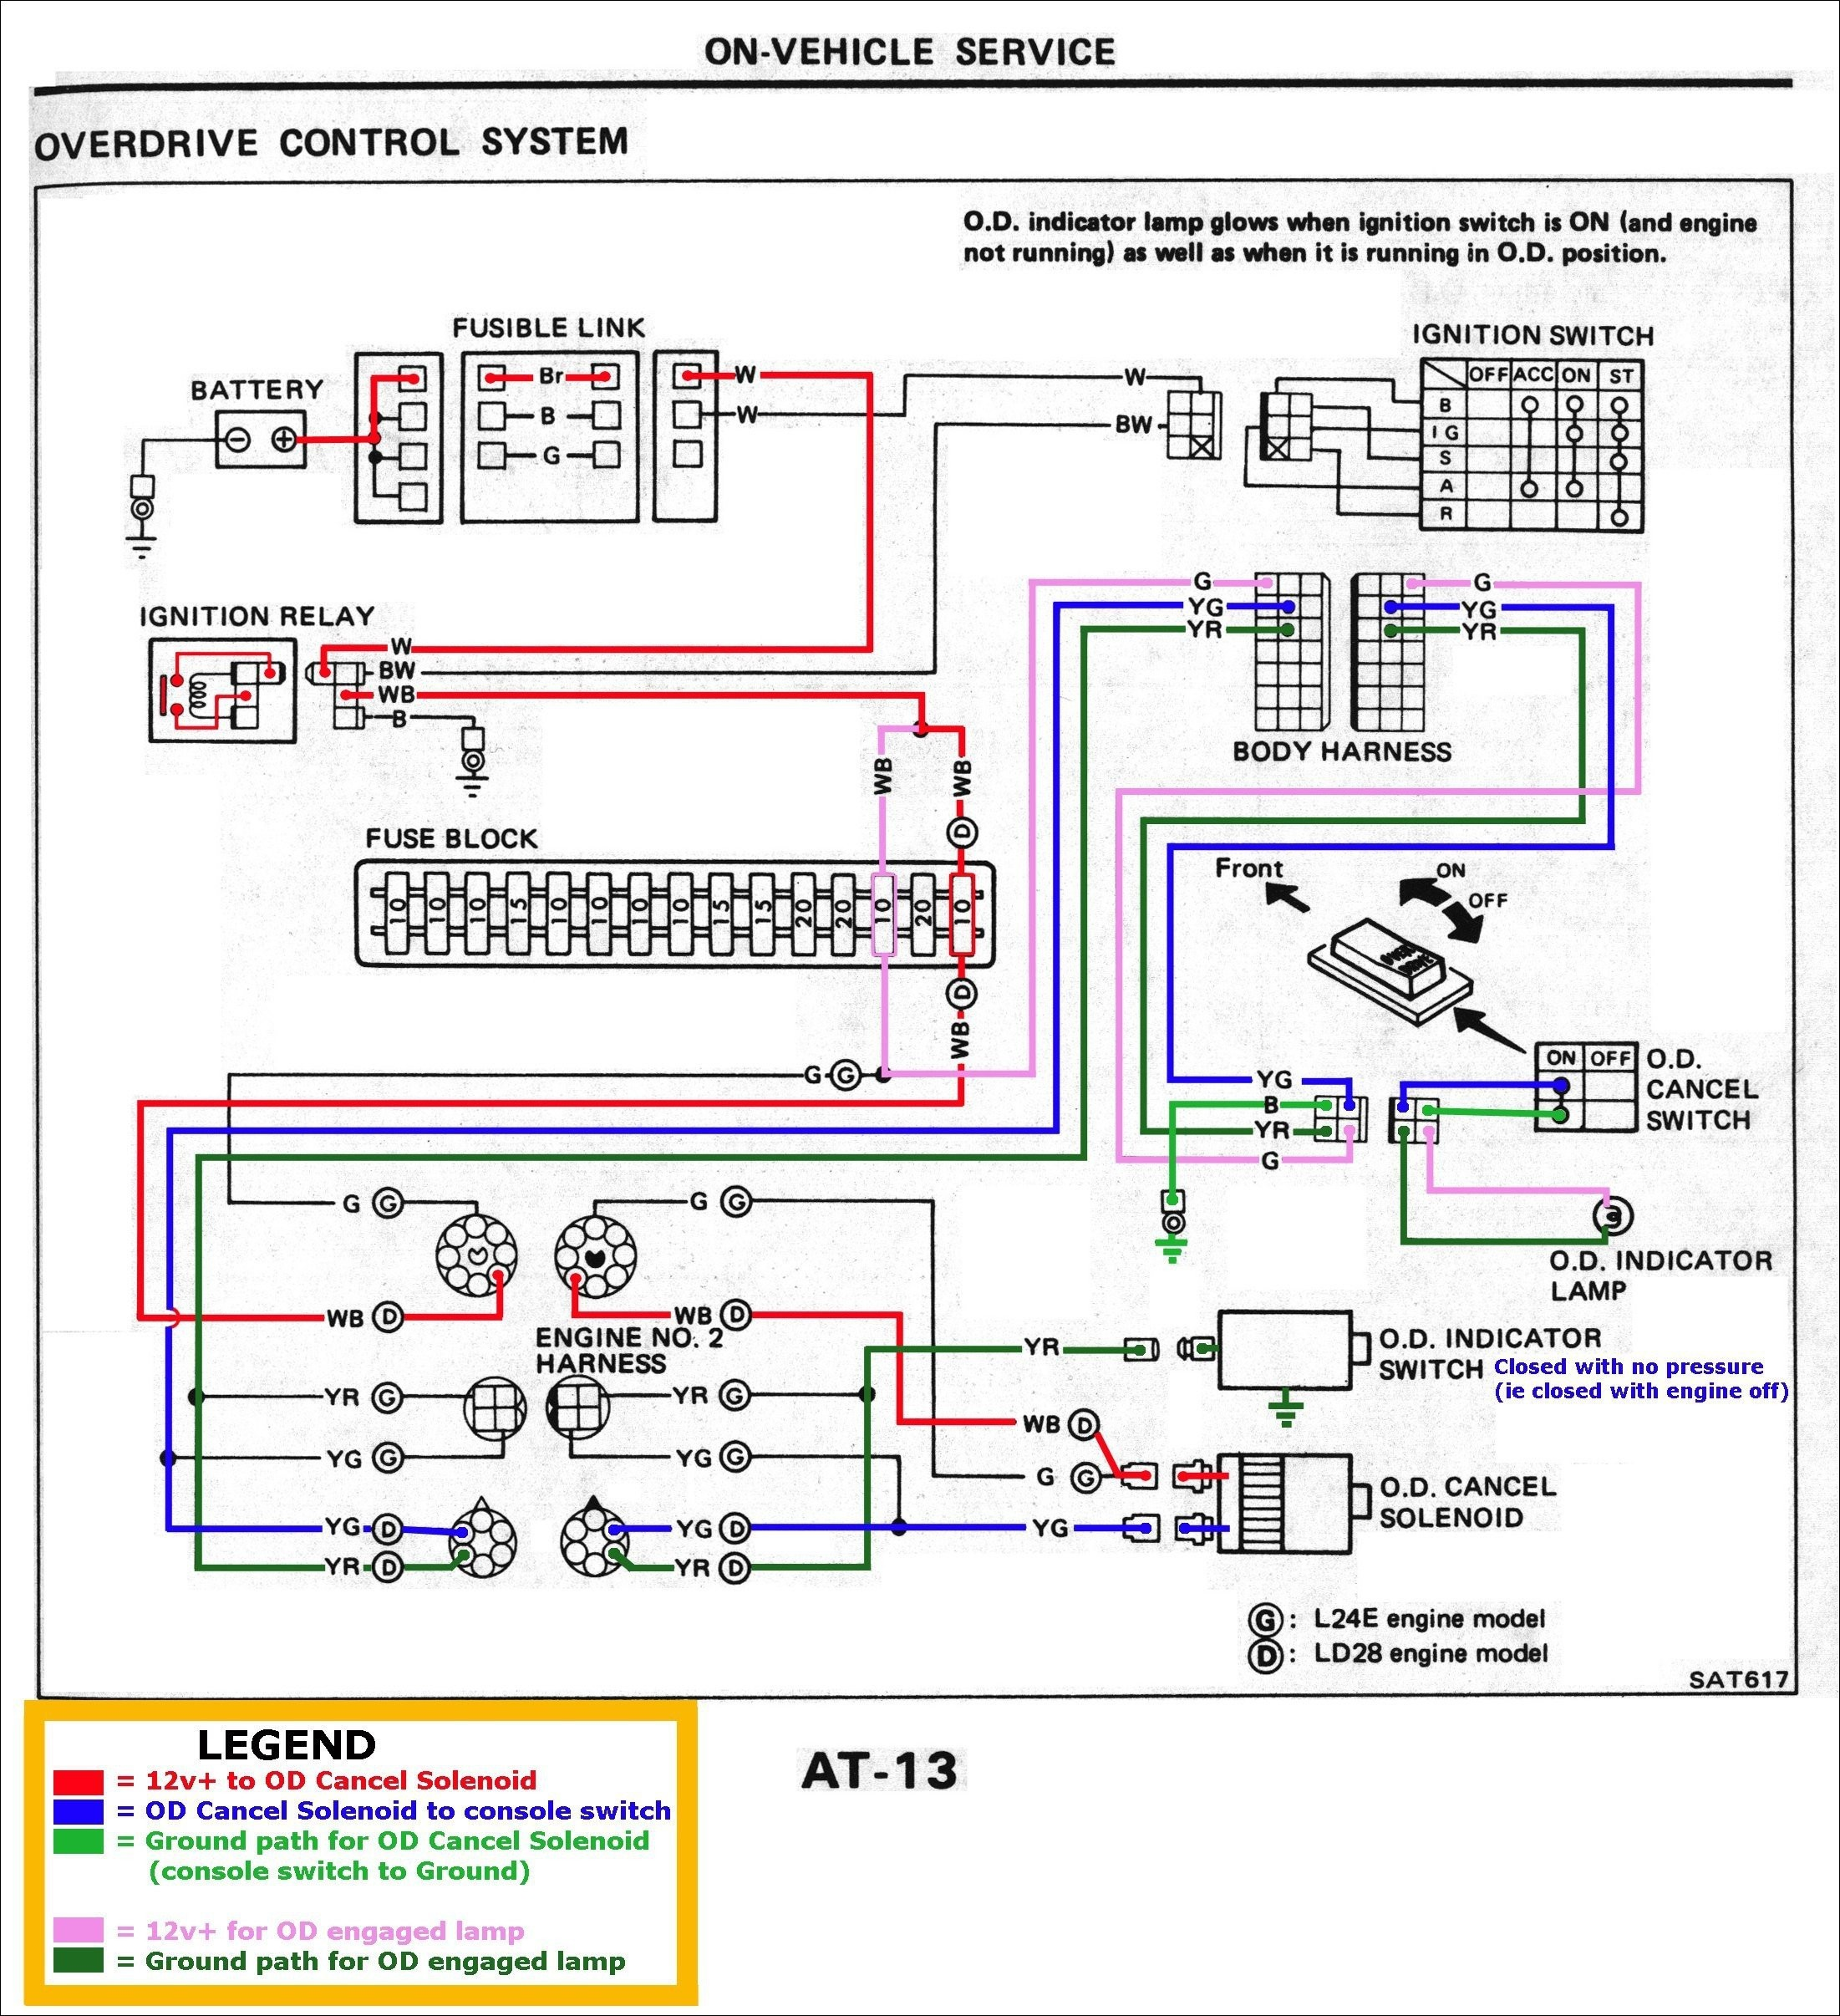 2002 Nissan Sentra Engine Diagram 2001 Nissan Maxima Radio Wiring Diagram Inspirational Nissan Altima Of 2002 Nissan Sentra Engine Diagram